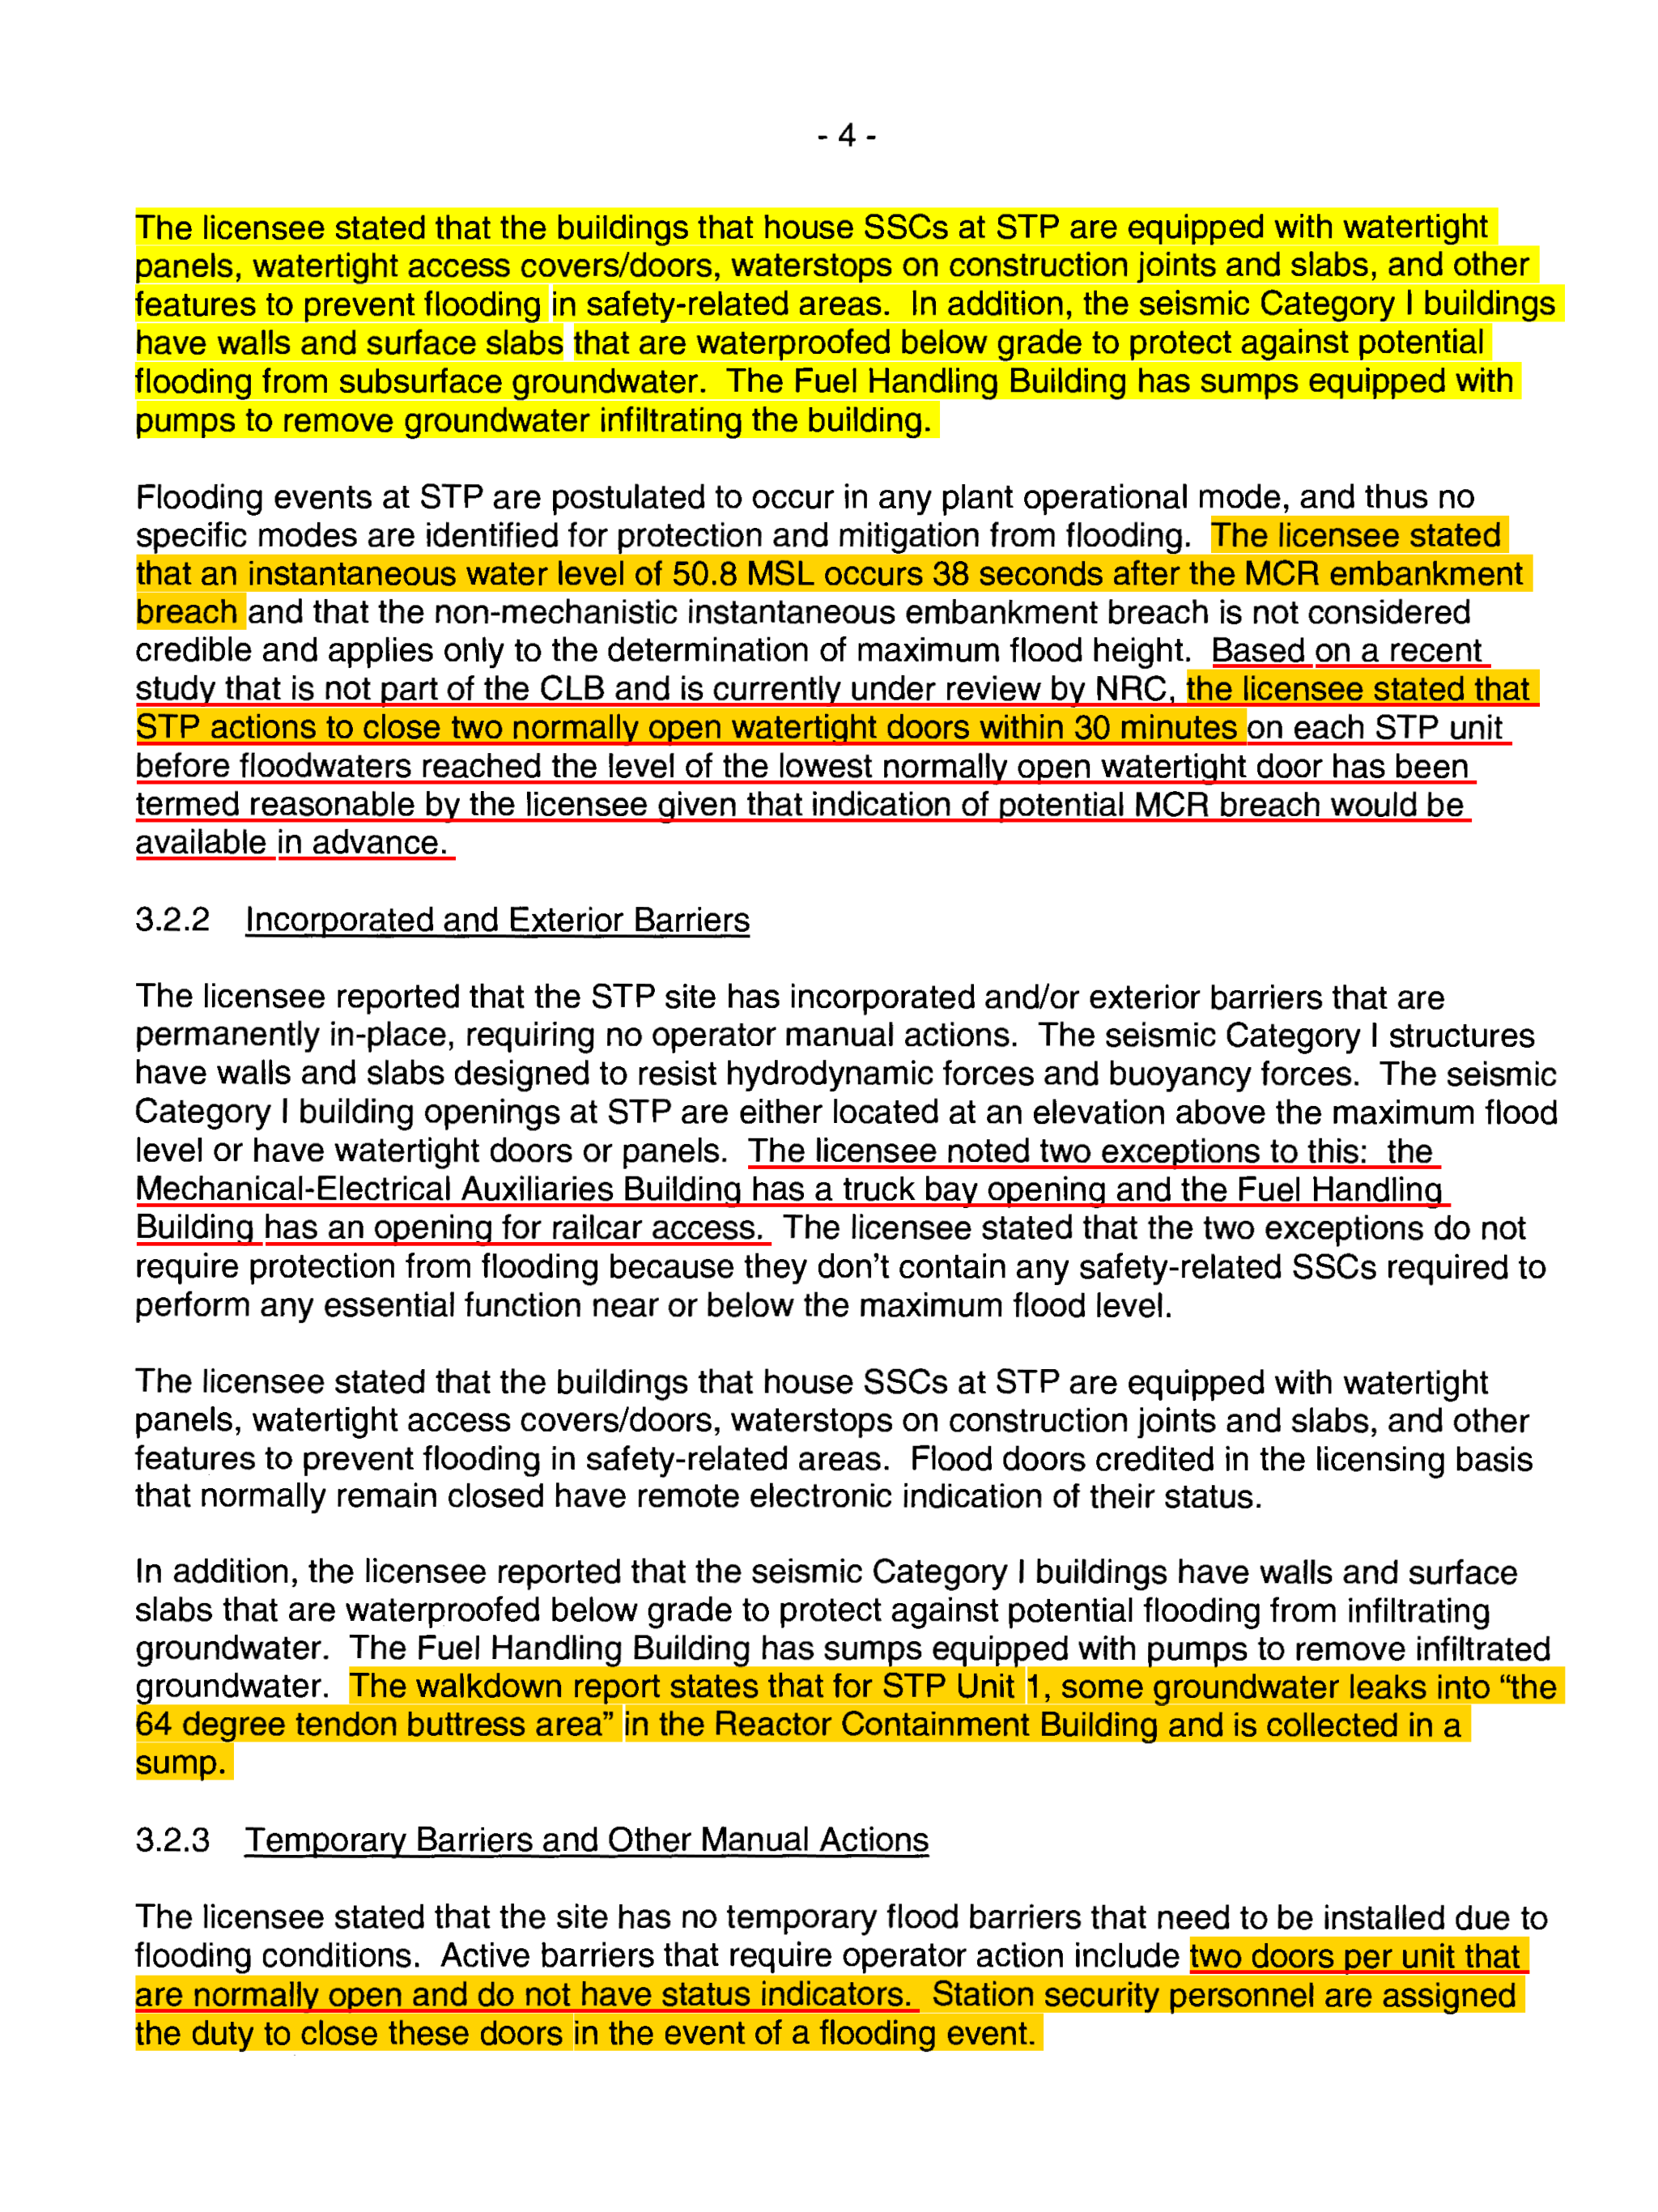 u201cSOUTH TEXAS PROJECT UNITS 1 AND 2- STAFF ASSESSMENT OF THE FLOODING WALKDOWN REPORTu201d //.nrc.gov/docs/ML1415/ML14150A191.pdf  sc 1 st  Mining Awareness + - WordPress.com & South Texas Nuclear u2013 Is It Really Watertight? If The Dam Fails Can ...